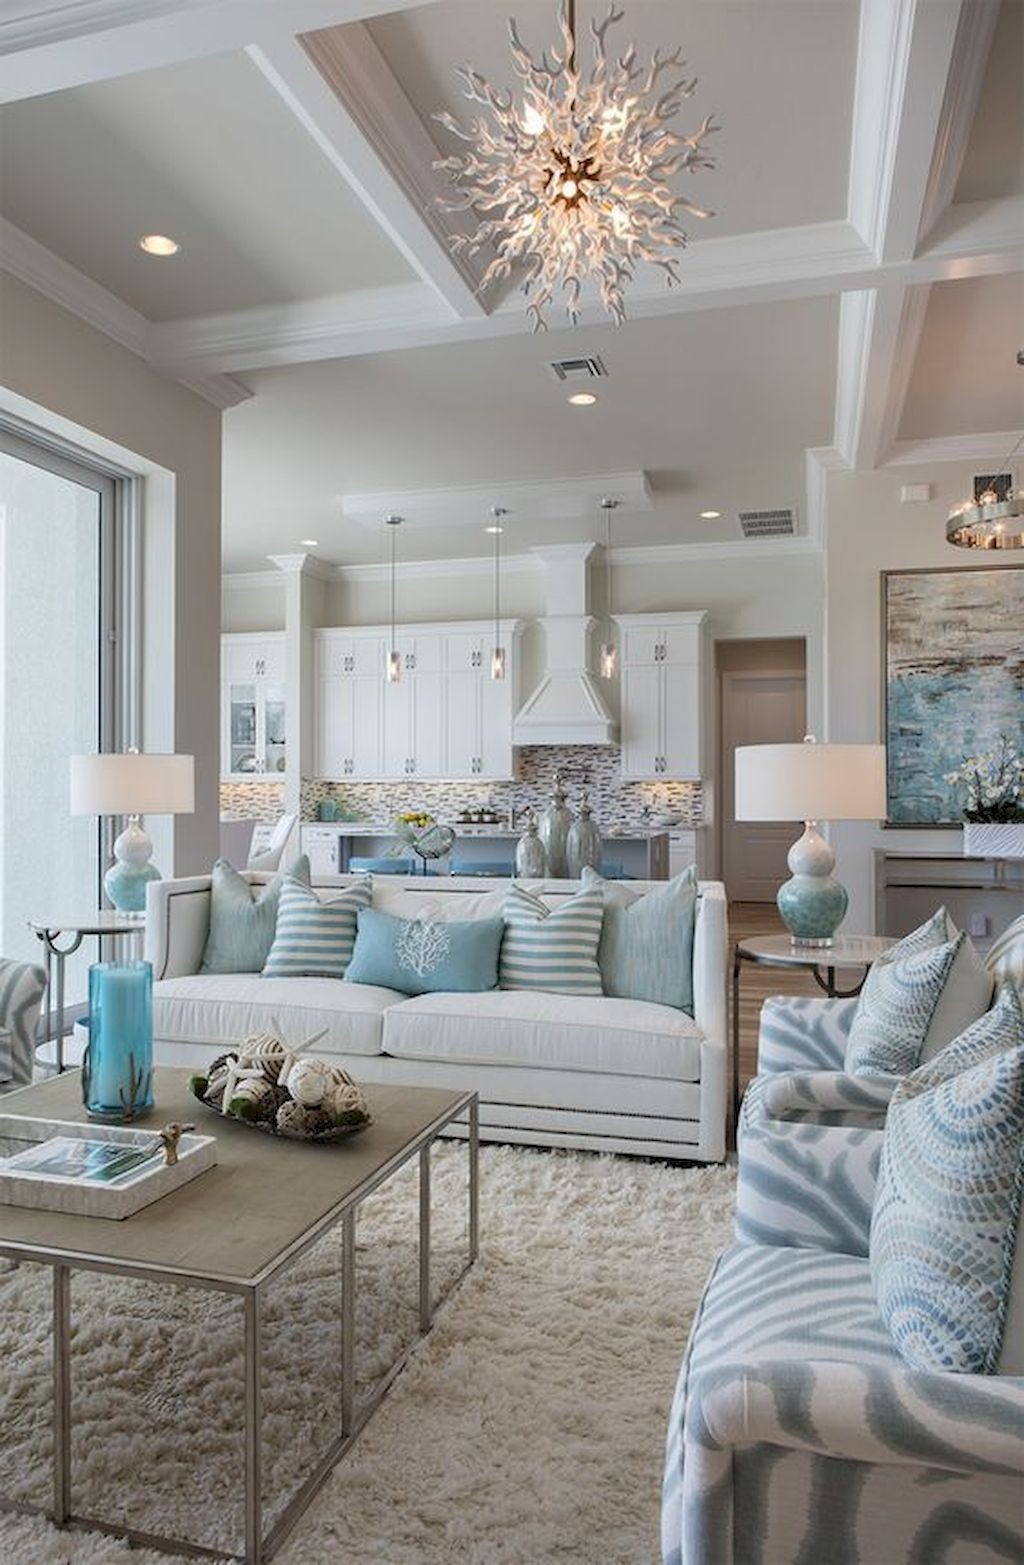 Cool cozy and stylish coastal living room decor ideas https homeastern also rh pinterest